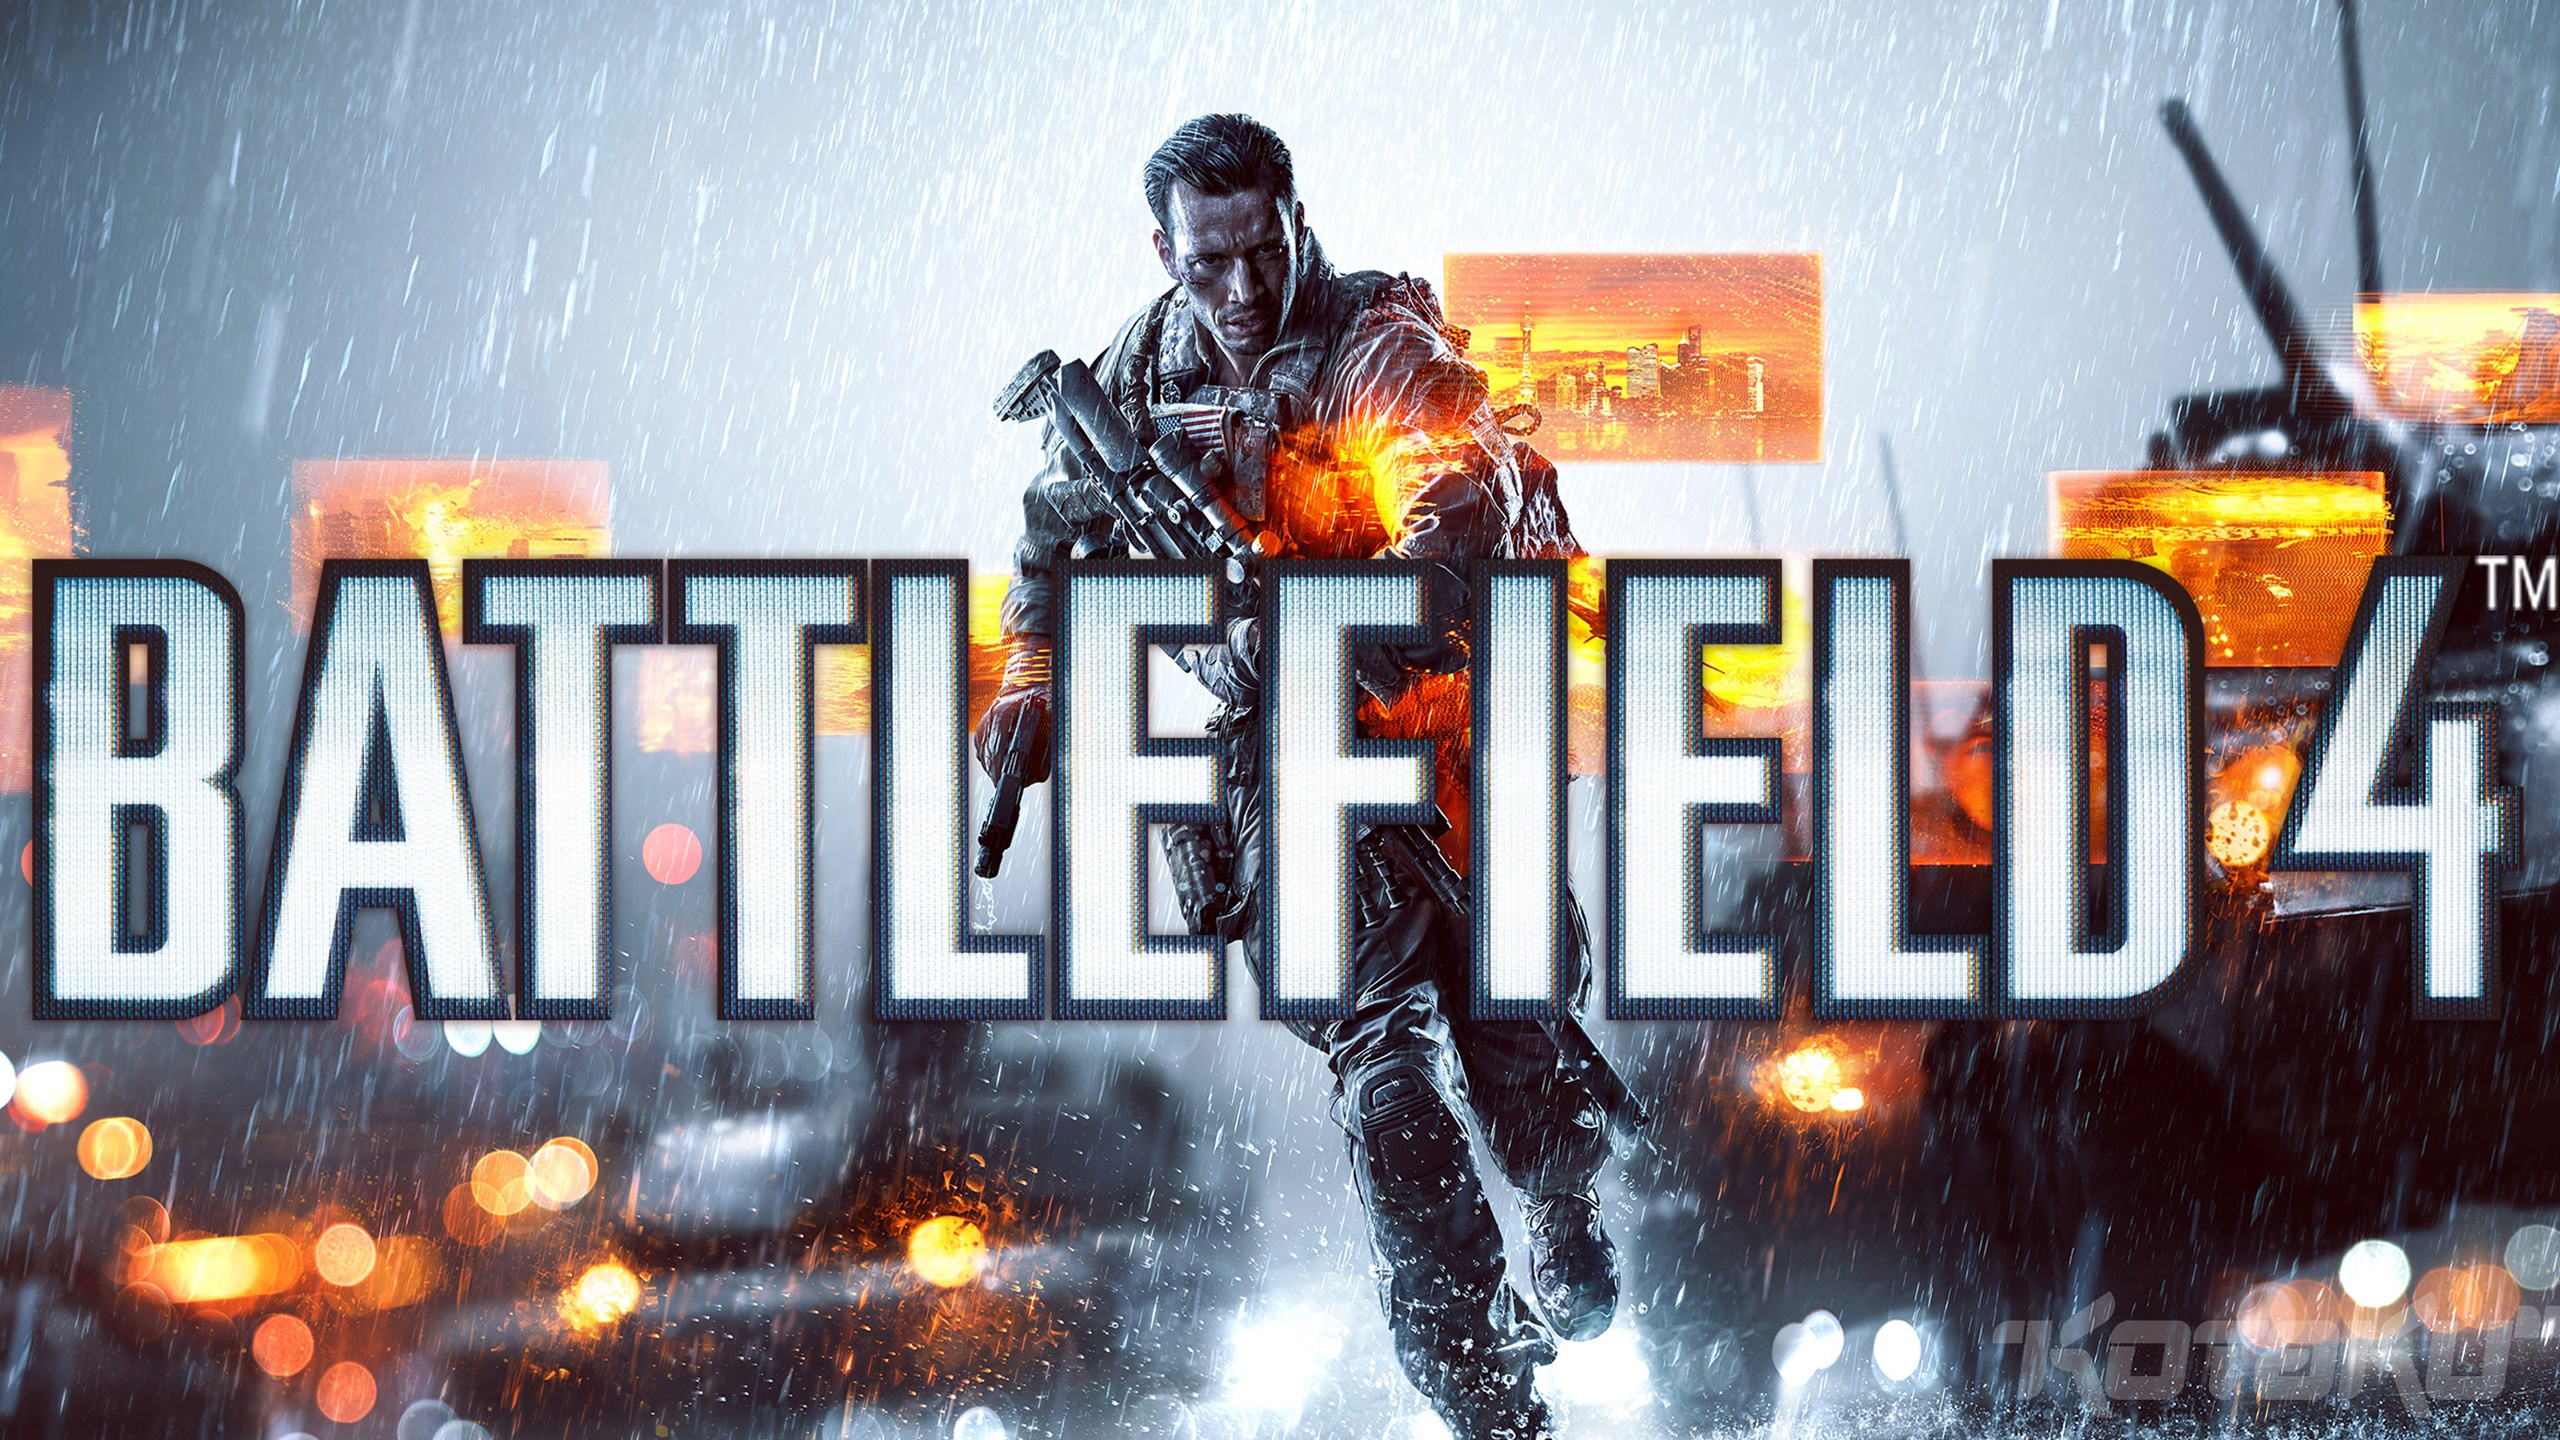 Battlefield 4 Wallpapers HD Wallpapers 2560x1440